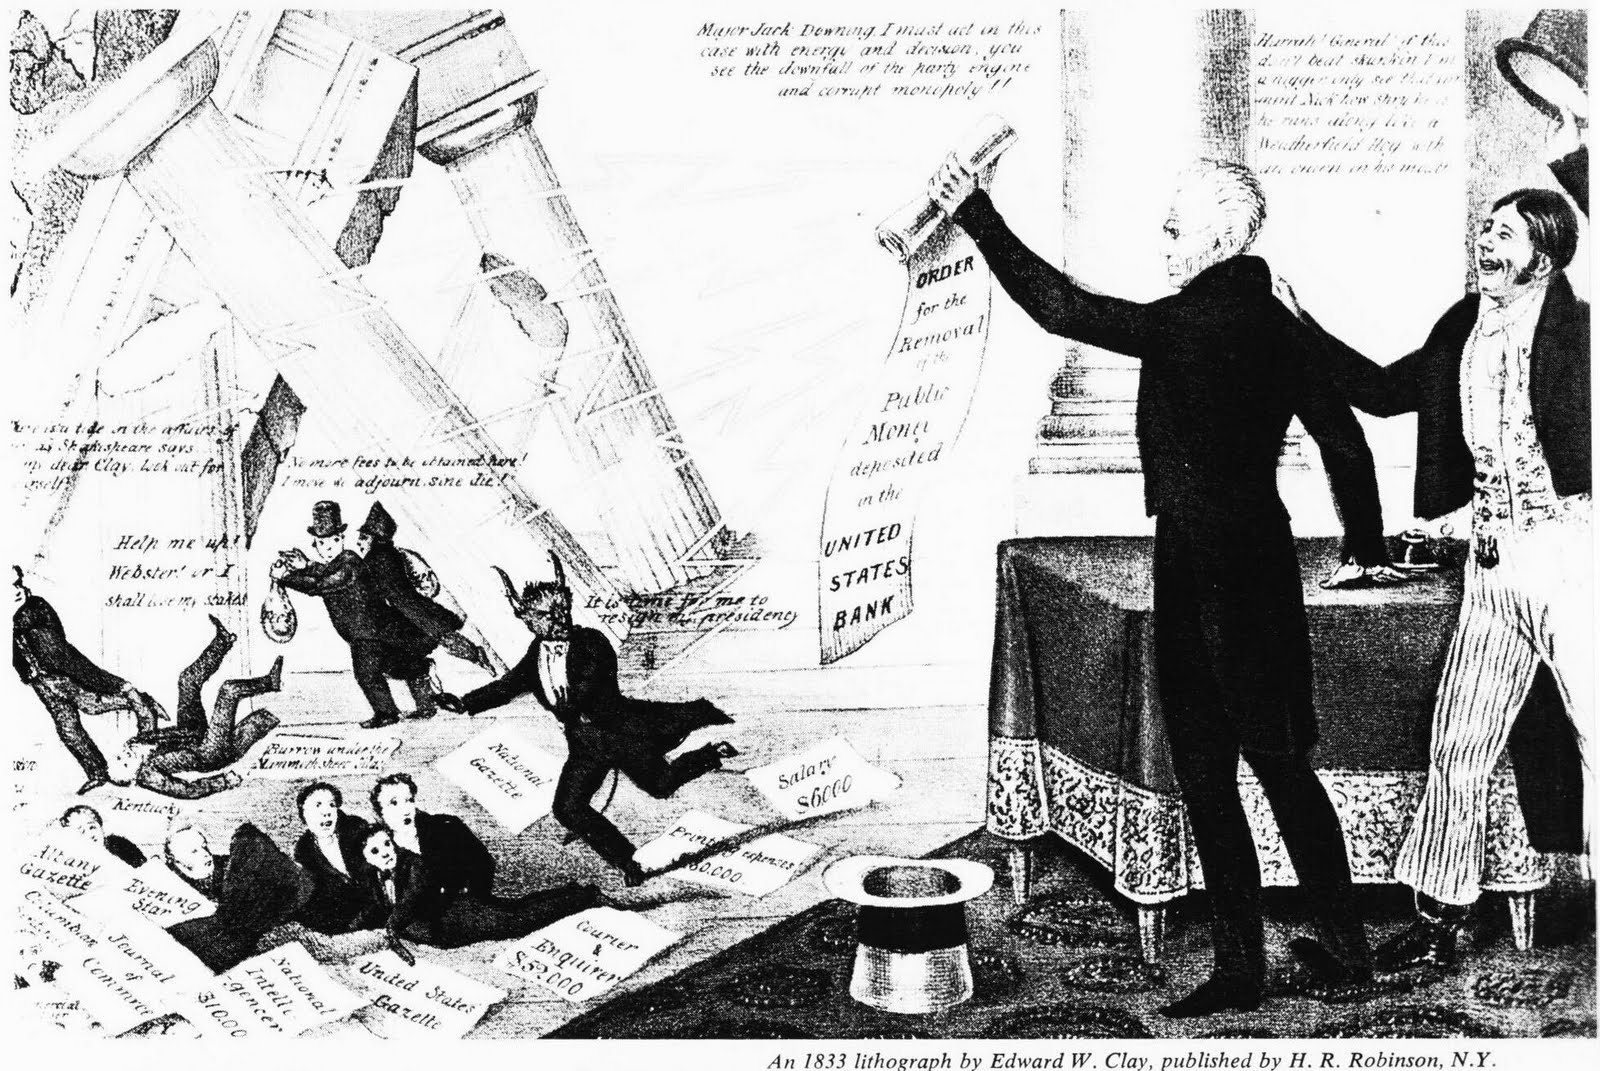 Kitchen Cabinet Andrew Jackson Similiar Andrew Jackson Political Cartoons About Democracy Keywords